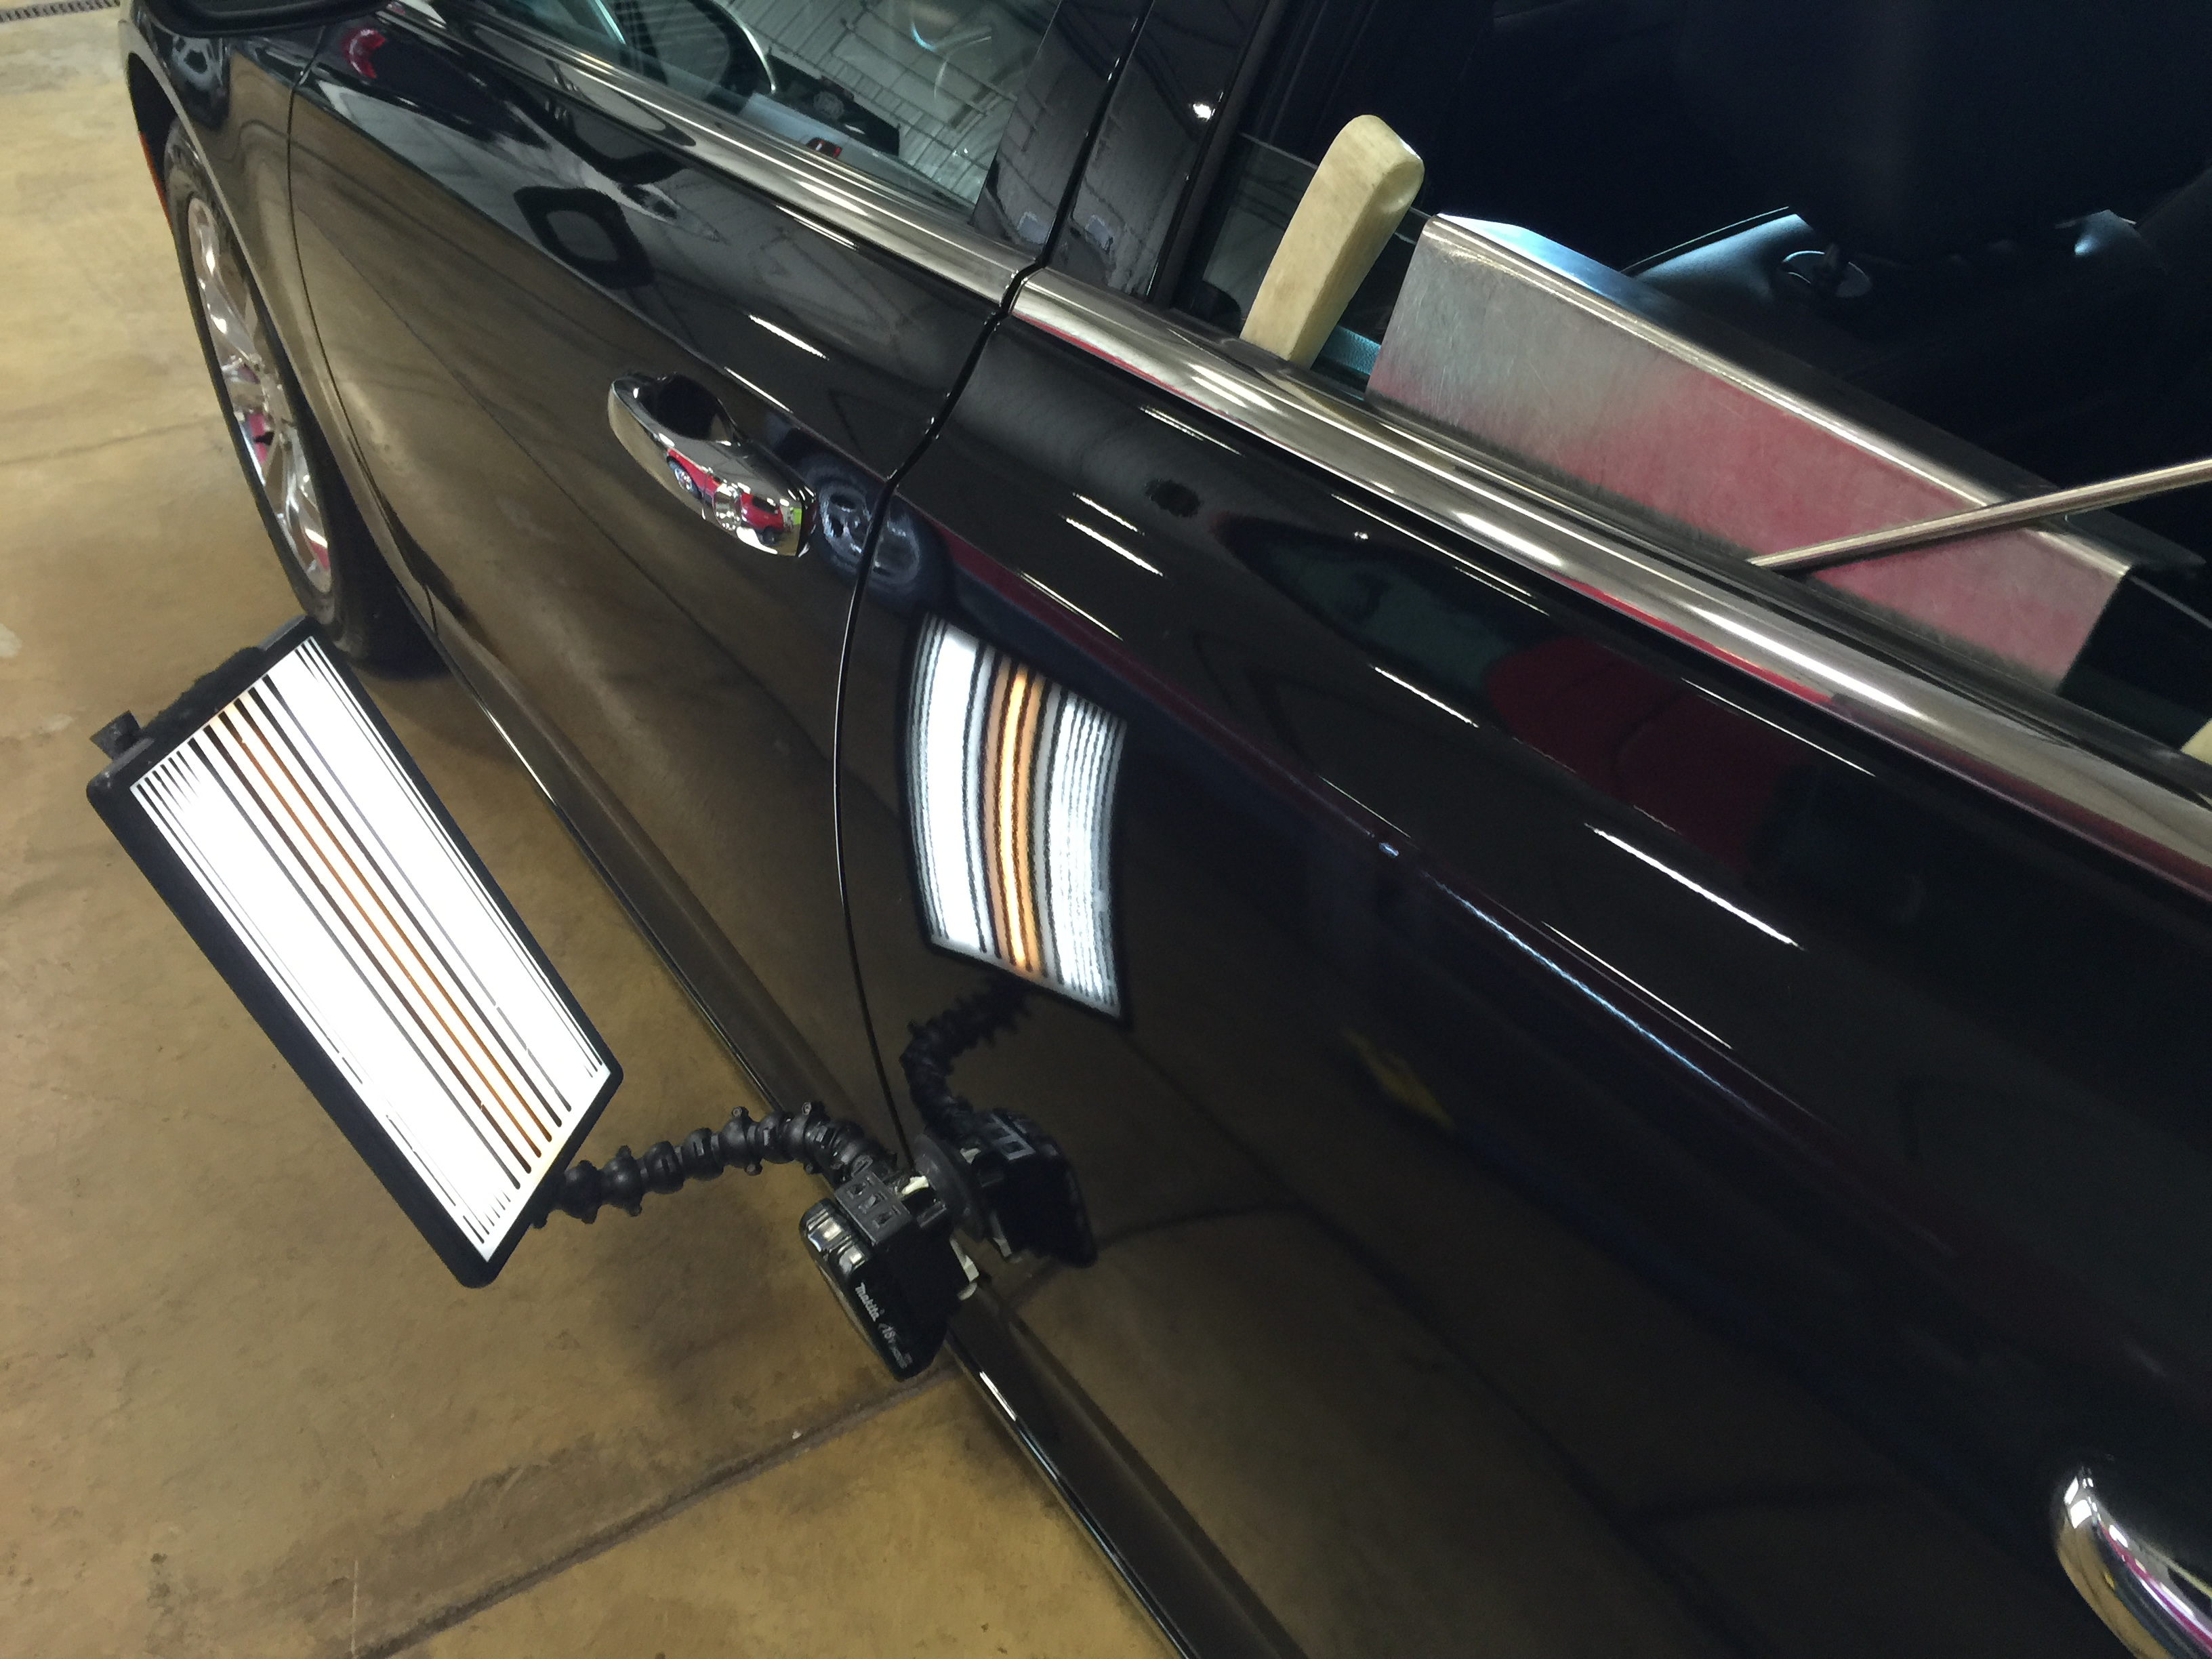 2016 Chrysler 300 C dent removal on drivers side rear door, Springfield IL, http://217dent.com